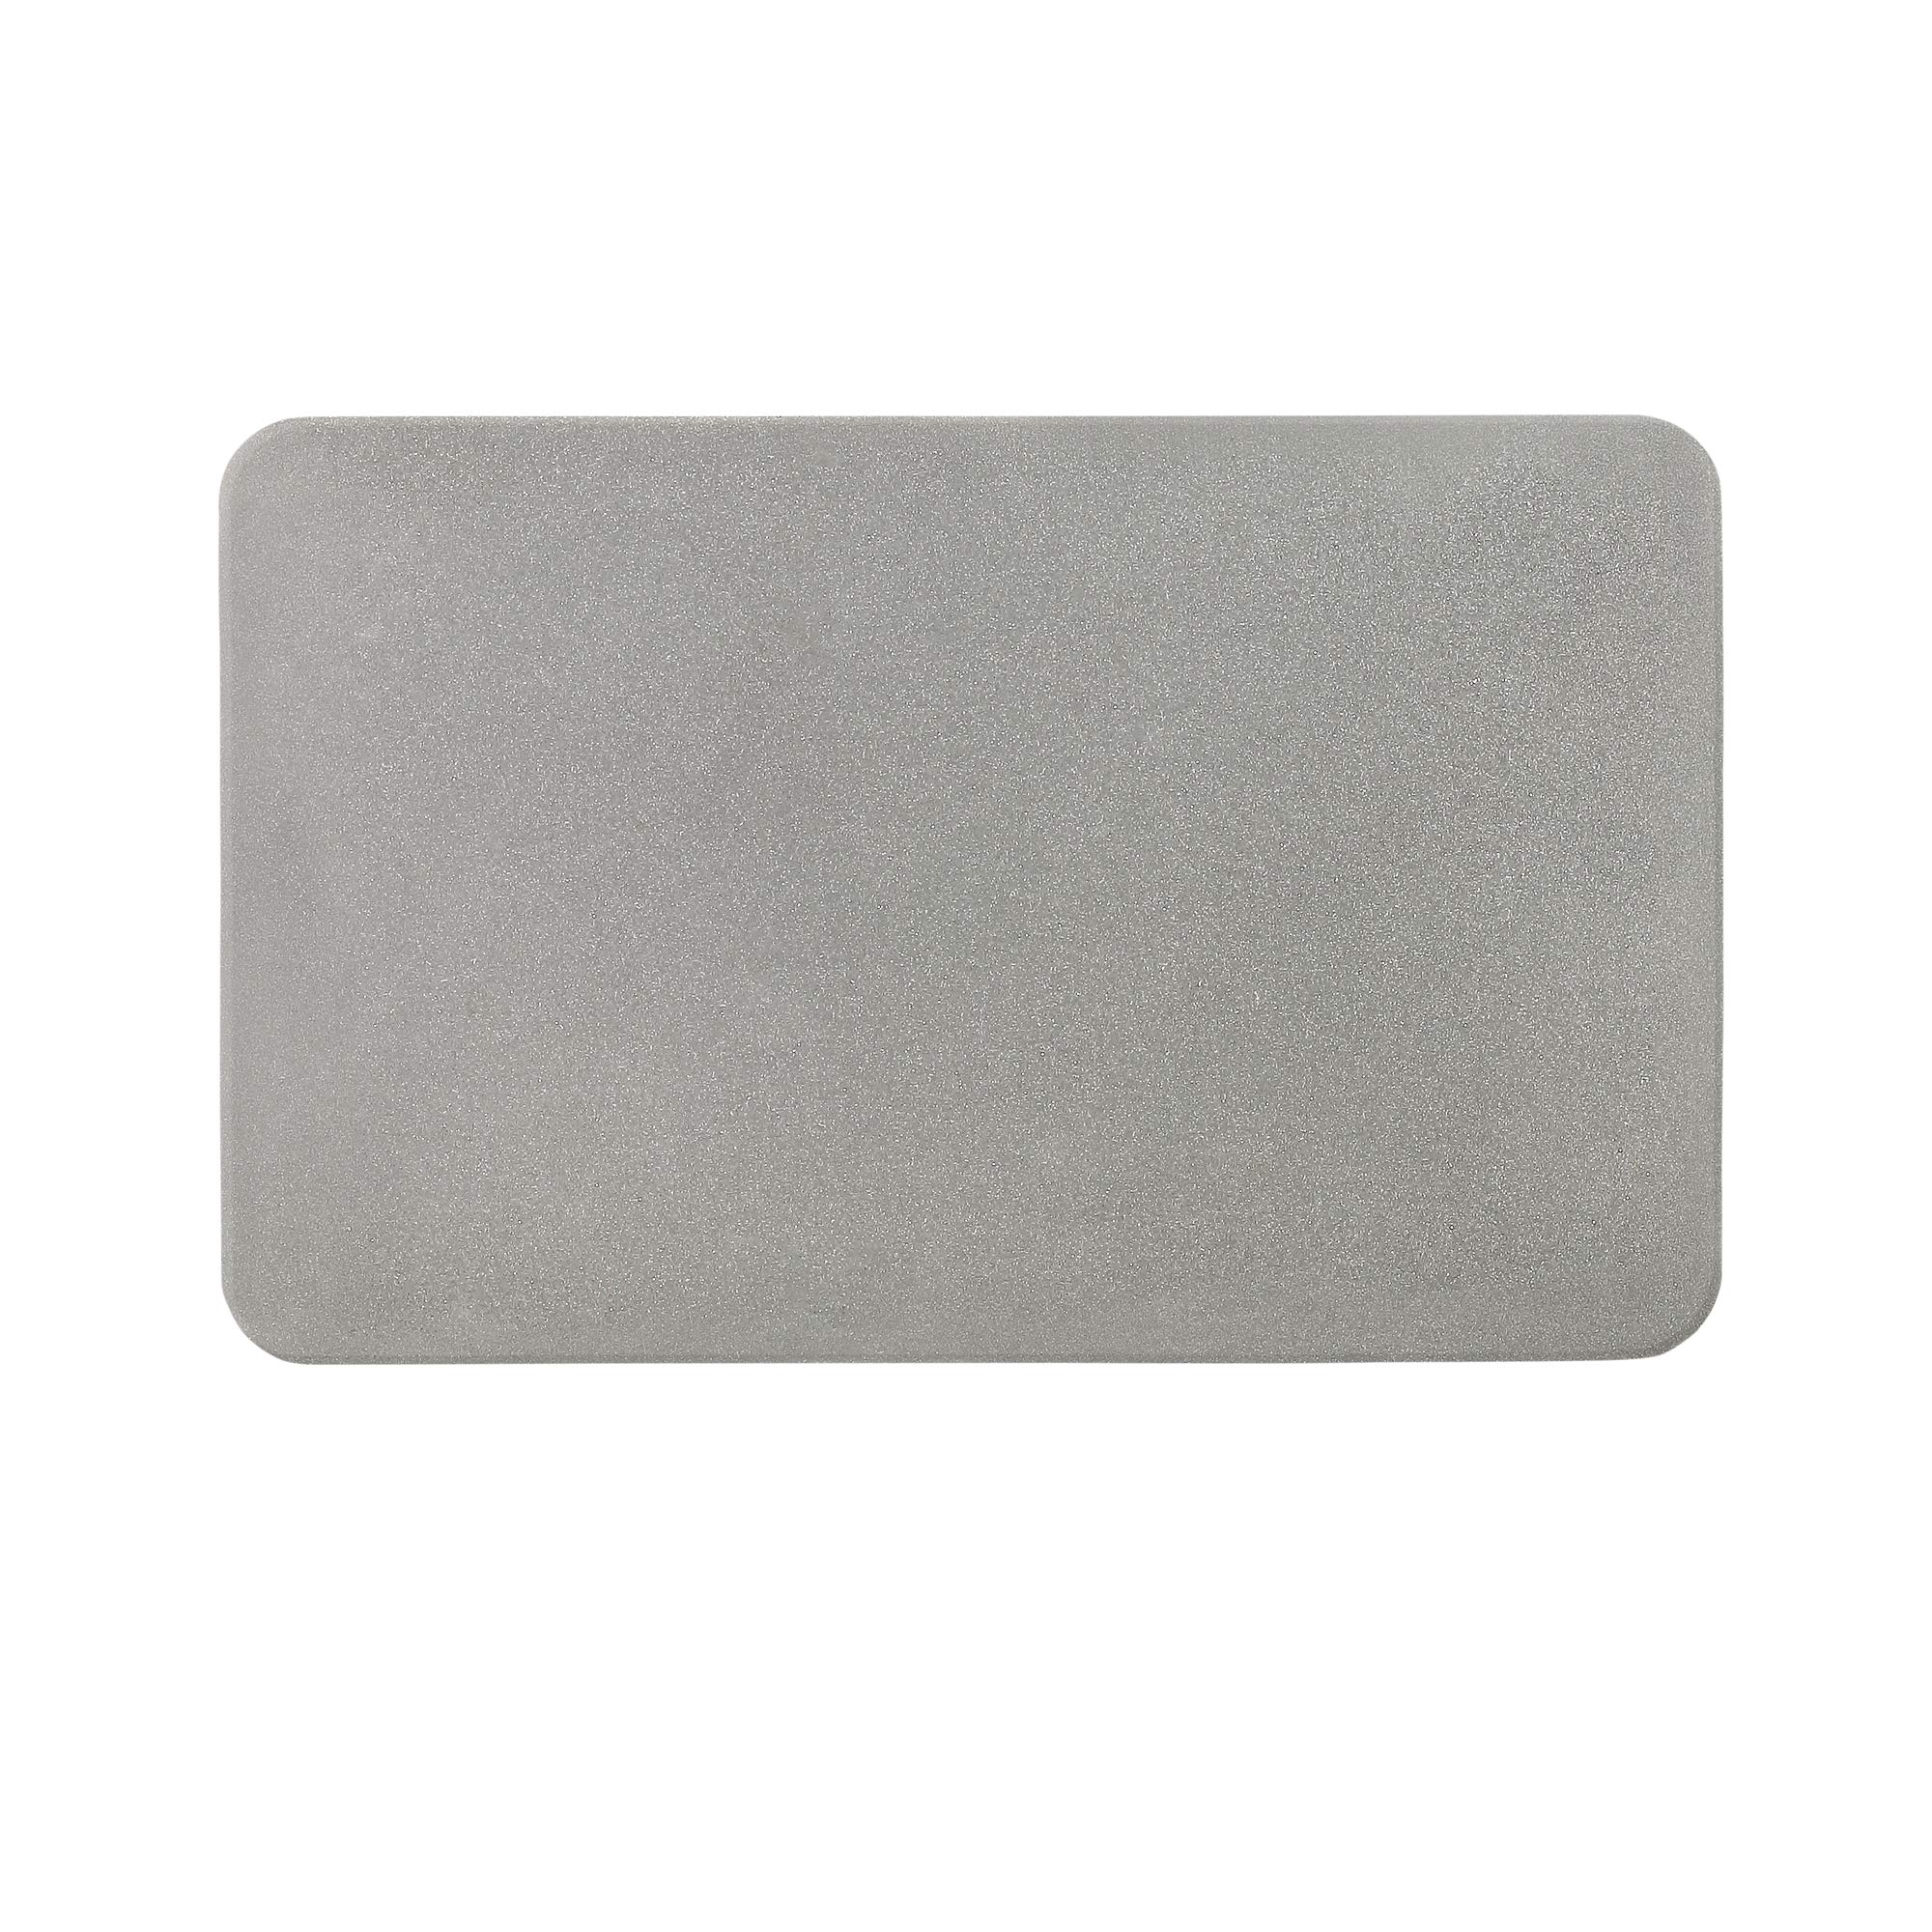 Credit Card Size Diamond Sharpening Stone (Extra Fine 1200 Grit)